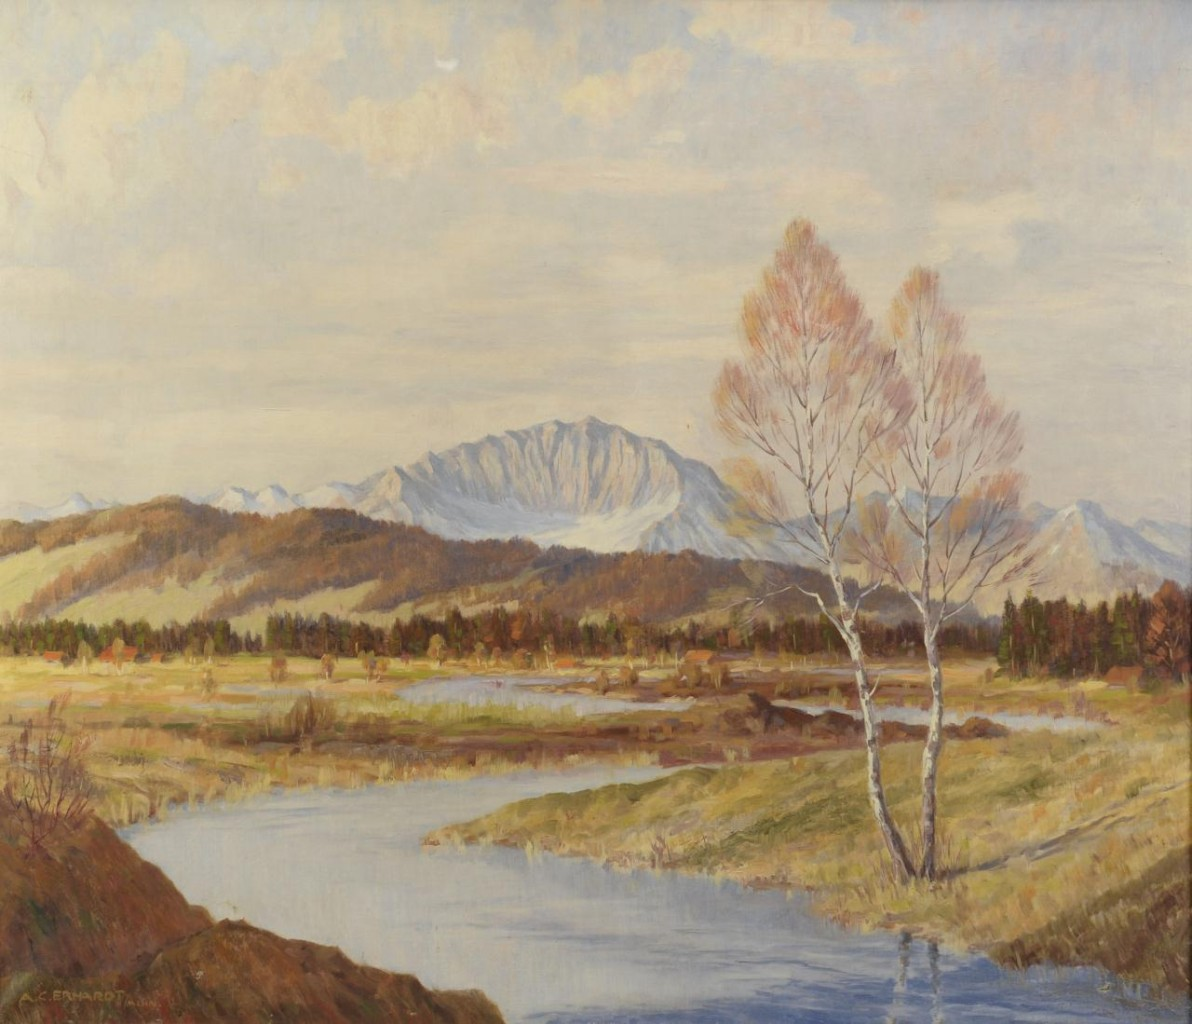 Lot 316: A. C. Erhardt oil on canvas landscape with river